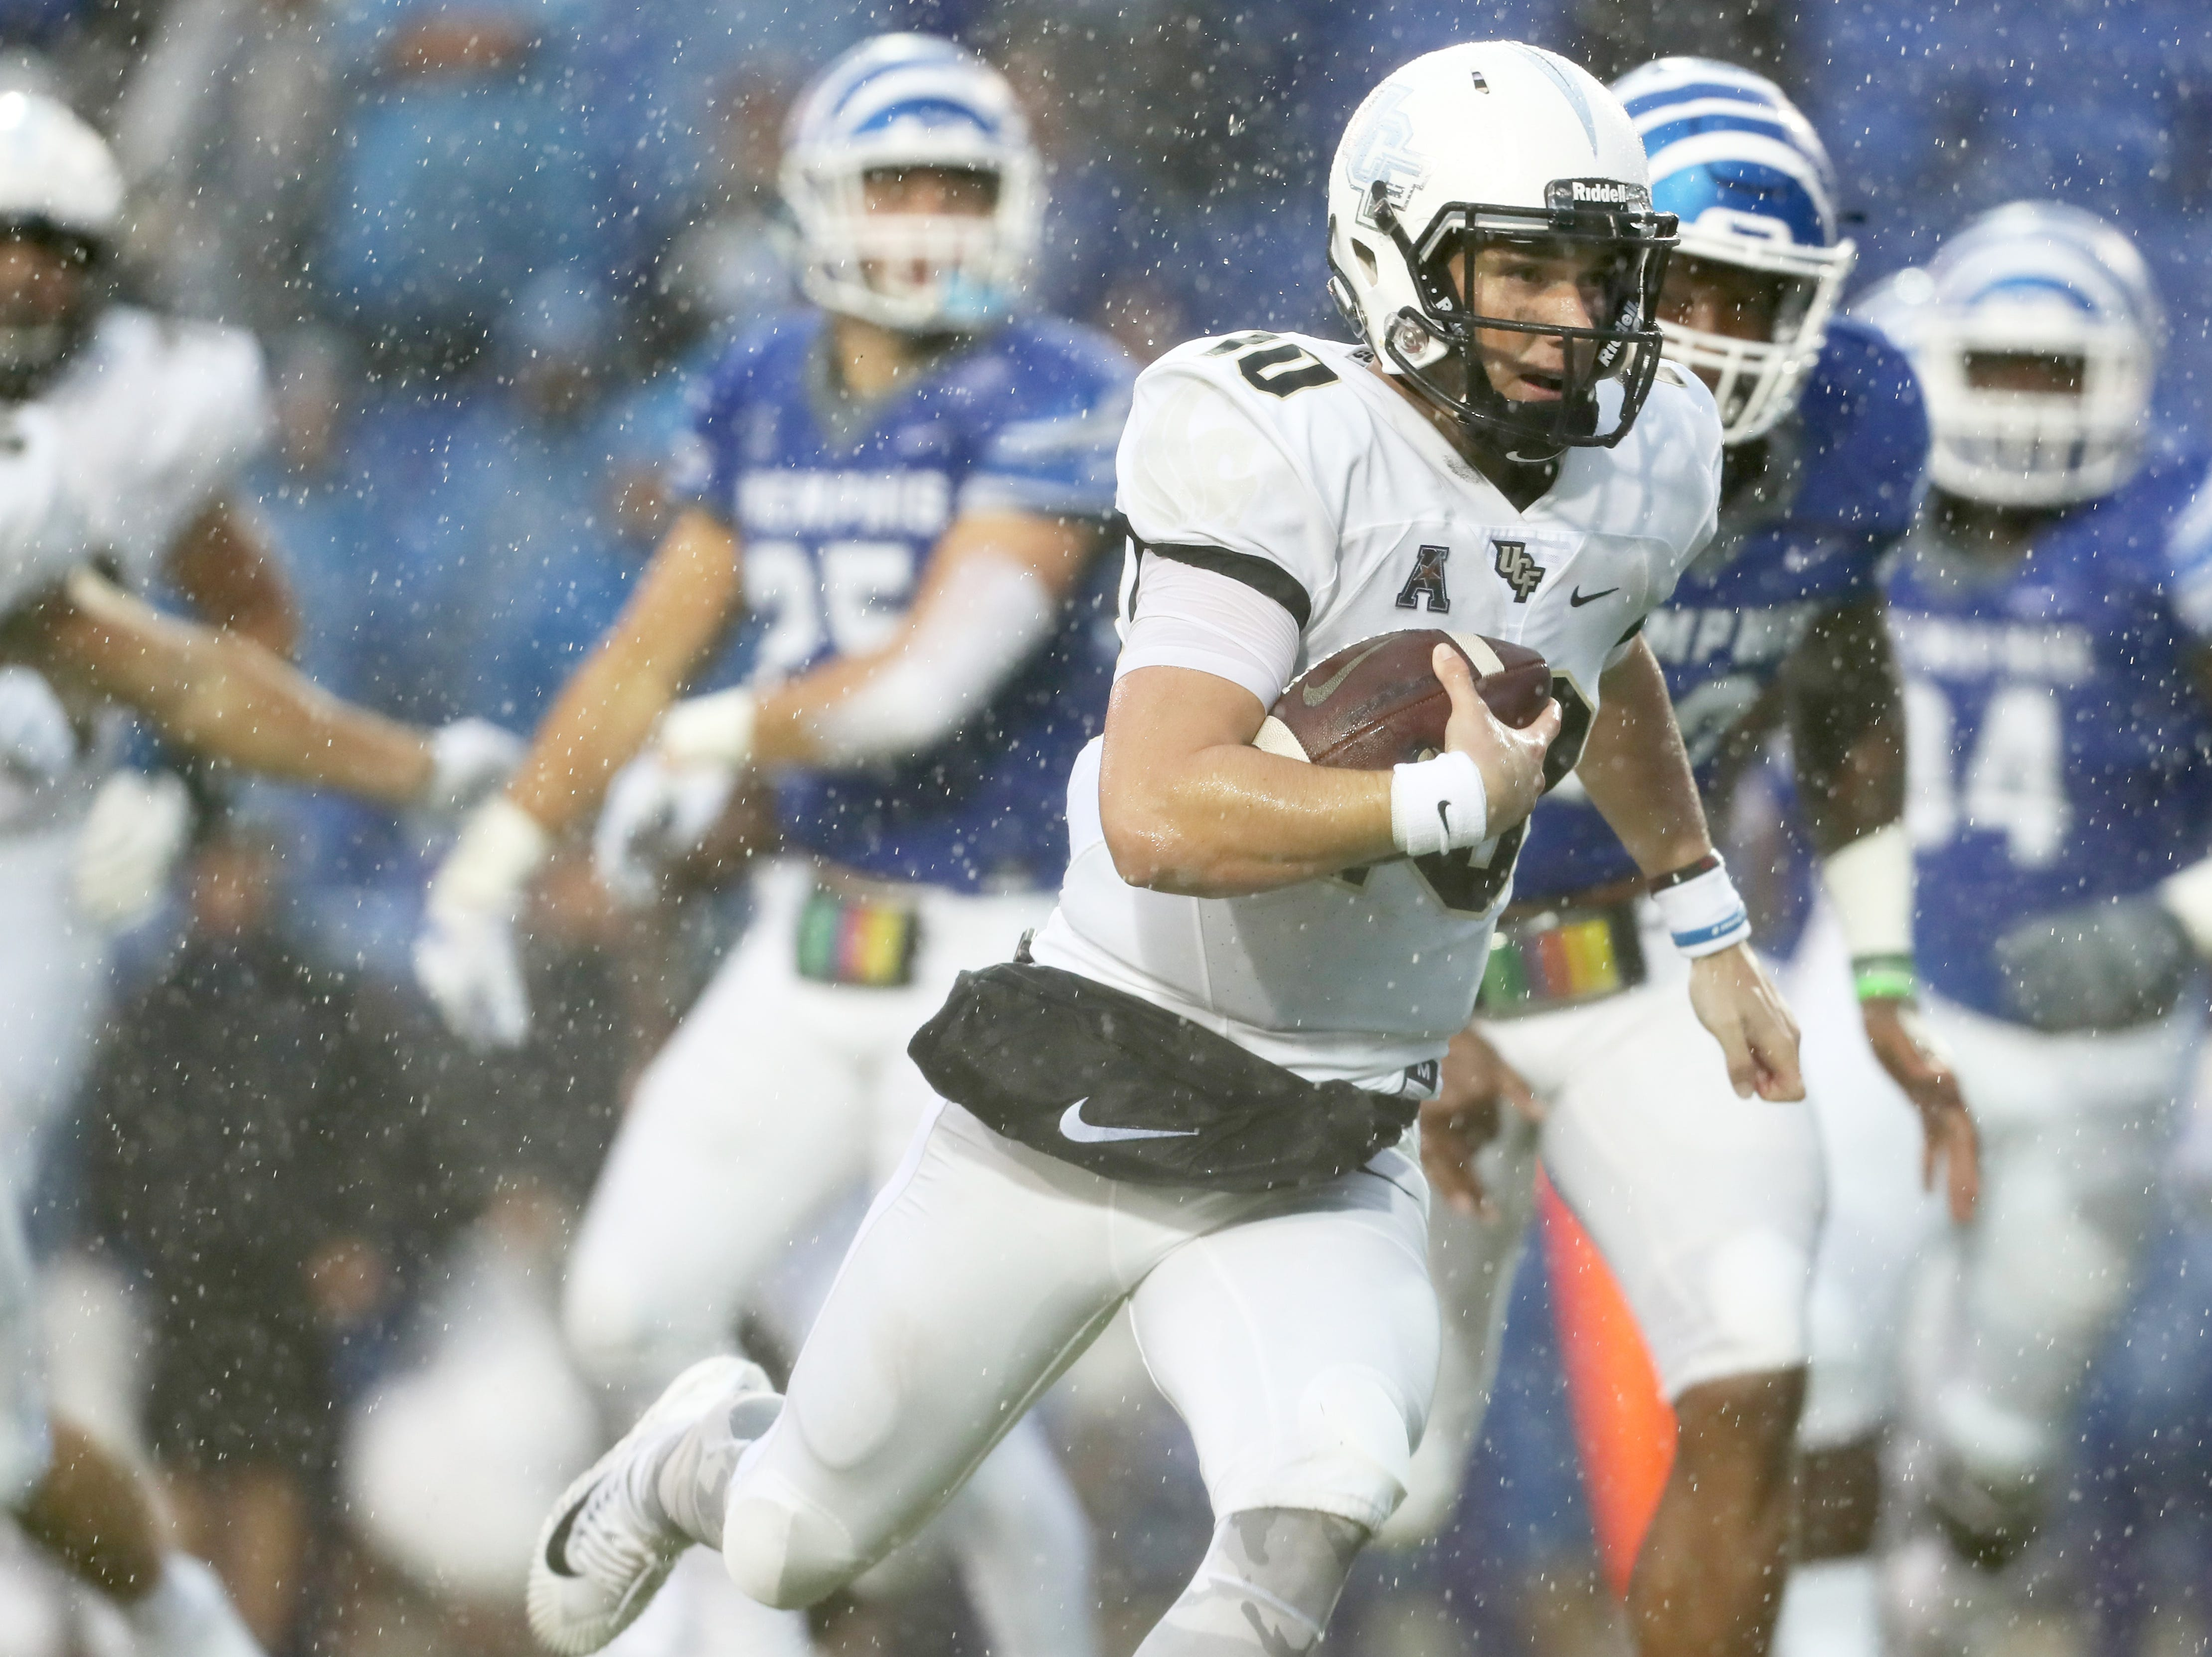 UCF quarterback McKenzie Milton scrambles in for the go-ahead touchdown against Memphis in the Knights' 31-30 win at the Liberty Bowl in Memphis, Tenn., Saturday, October 13, 2018.